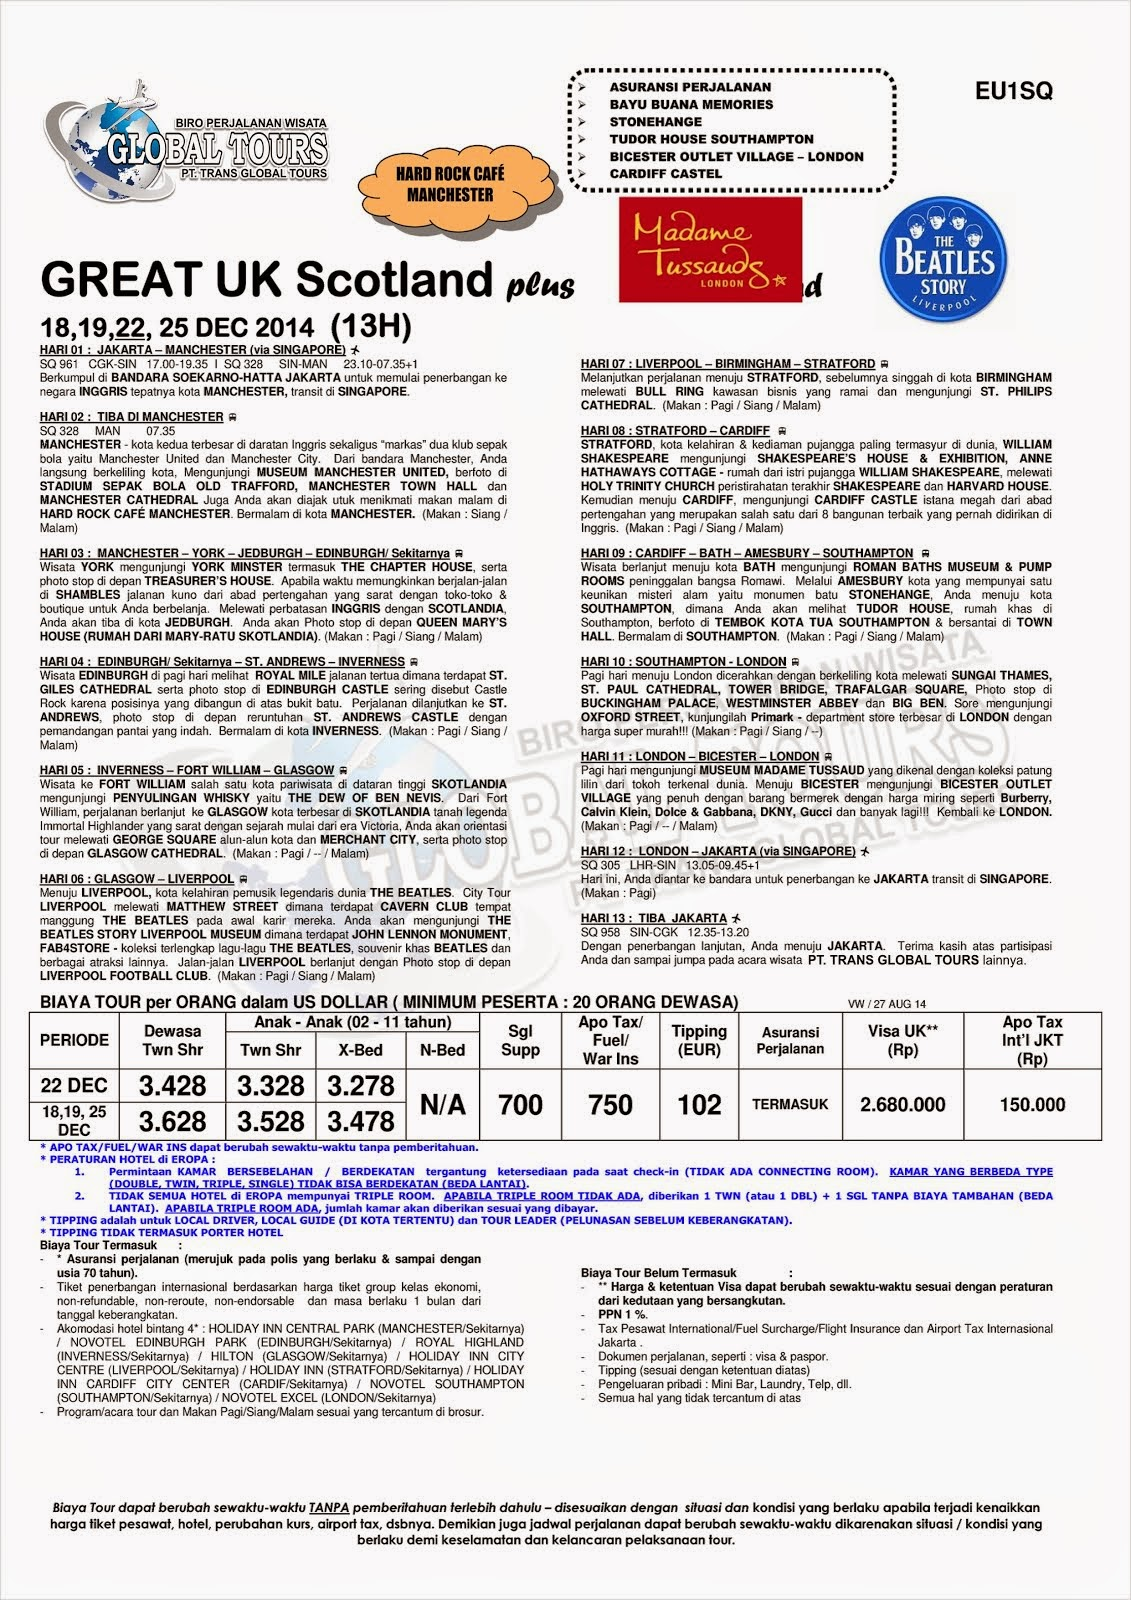 GREAT UK SCOTLAND PLUS